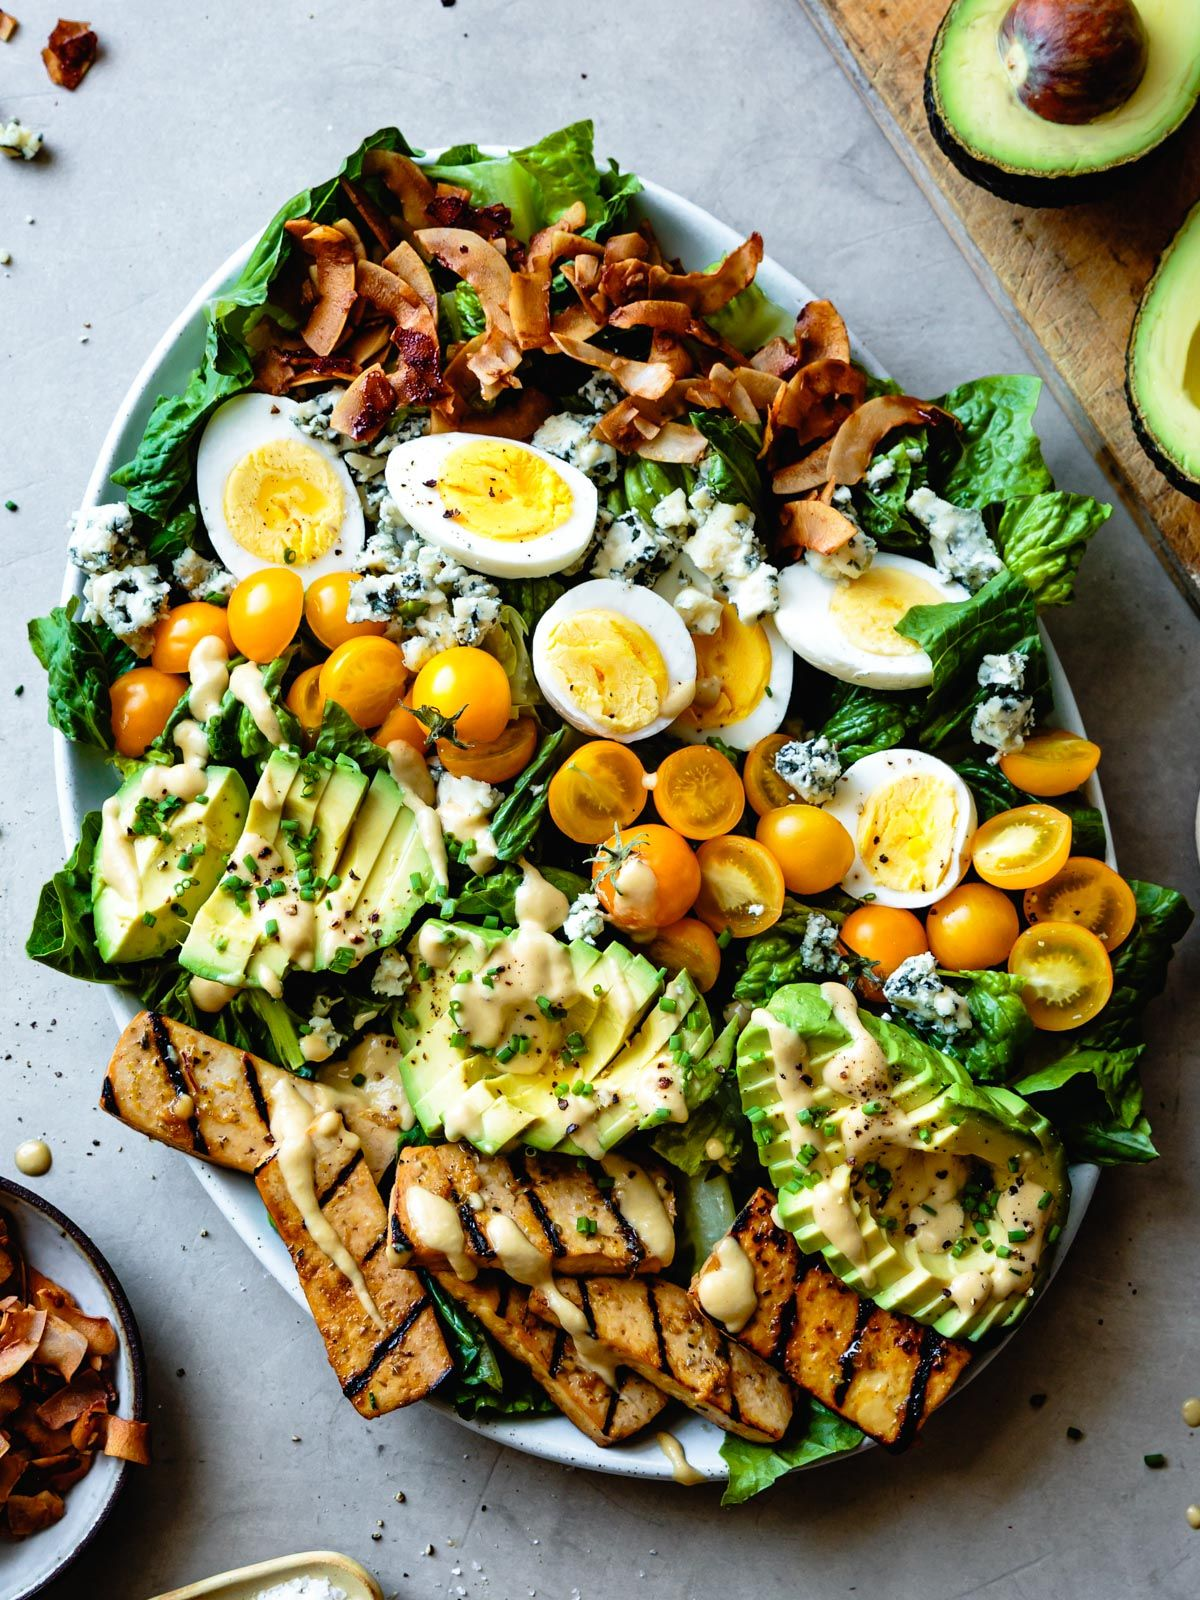 Protein-packed vegetarian Cobb salad loaded with grilled tofu, coconut bacon, avocado, tomatoes, eggs, blue cheese, and creamy mustard vinaigrette.